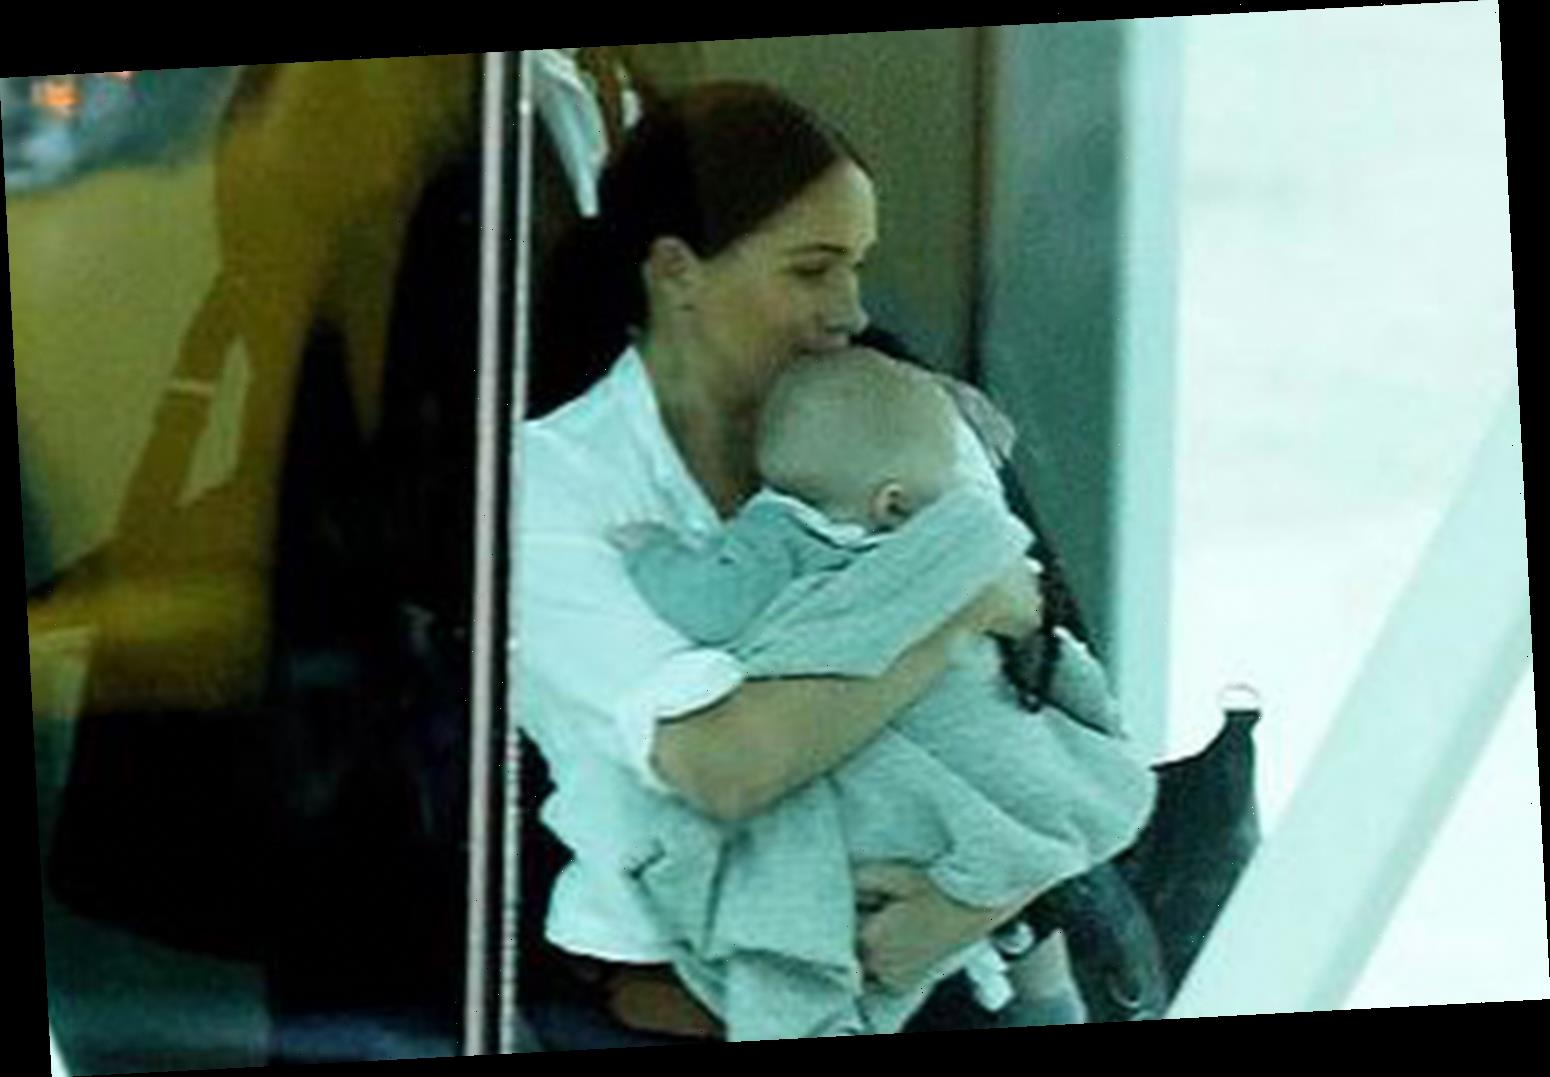 Meghan Markle clutches baby Archie as they fly BA to Johannesburg for final leg of royal tour – The Sun